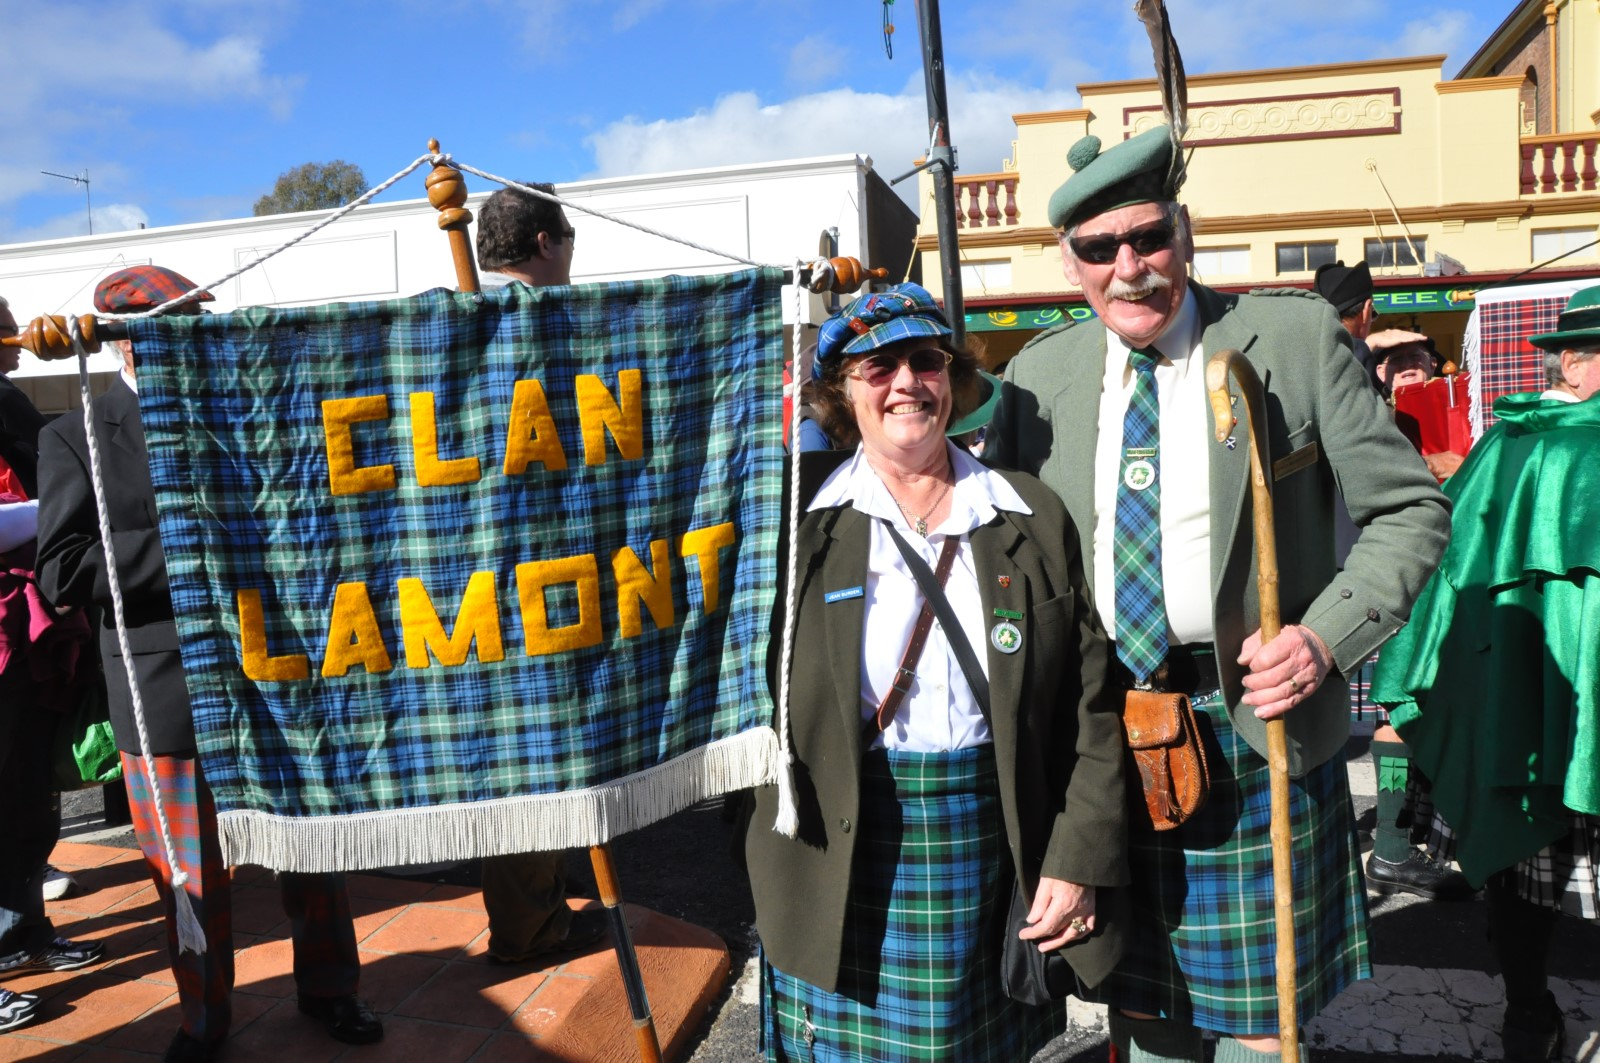 James (Lieutenant to the Chief) and Jean Burden - Clan Lamont - Australian Celtic Festival, Glen Innes, 2011